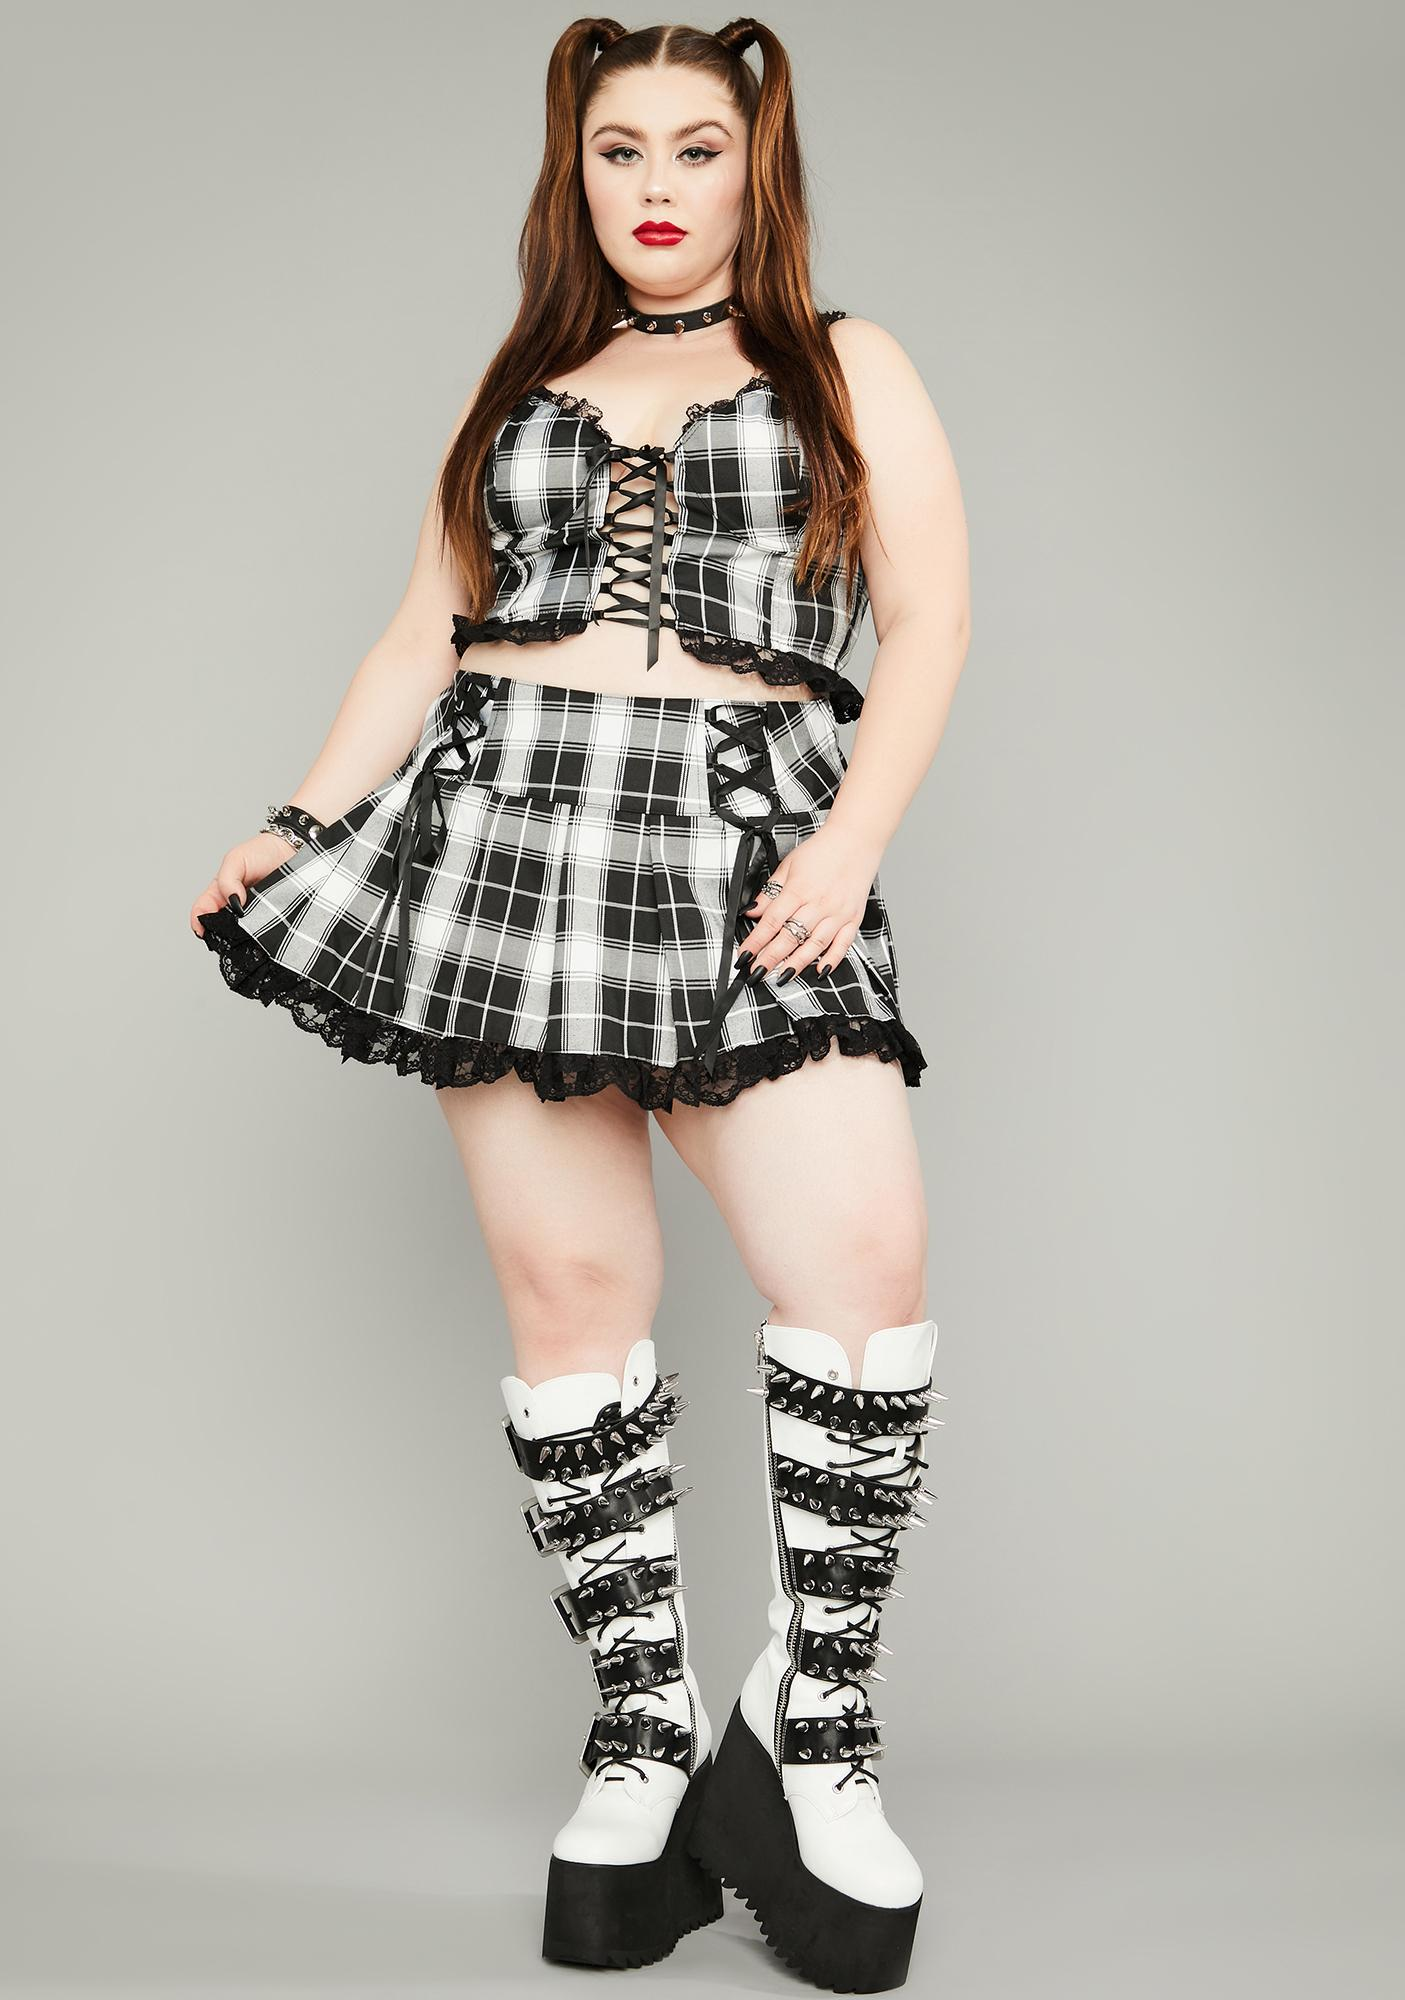 Widow Ivory Miss Charm School Dropout Plaid Skirt